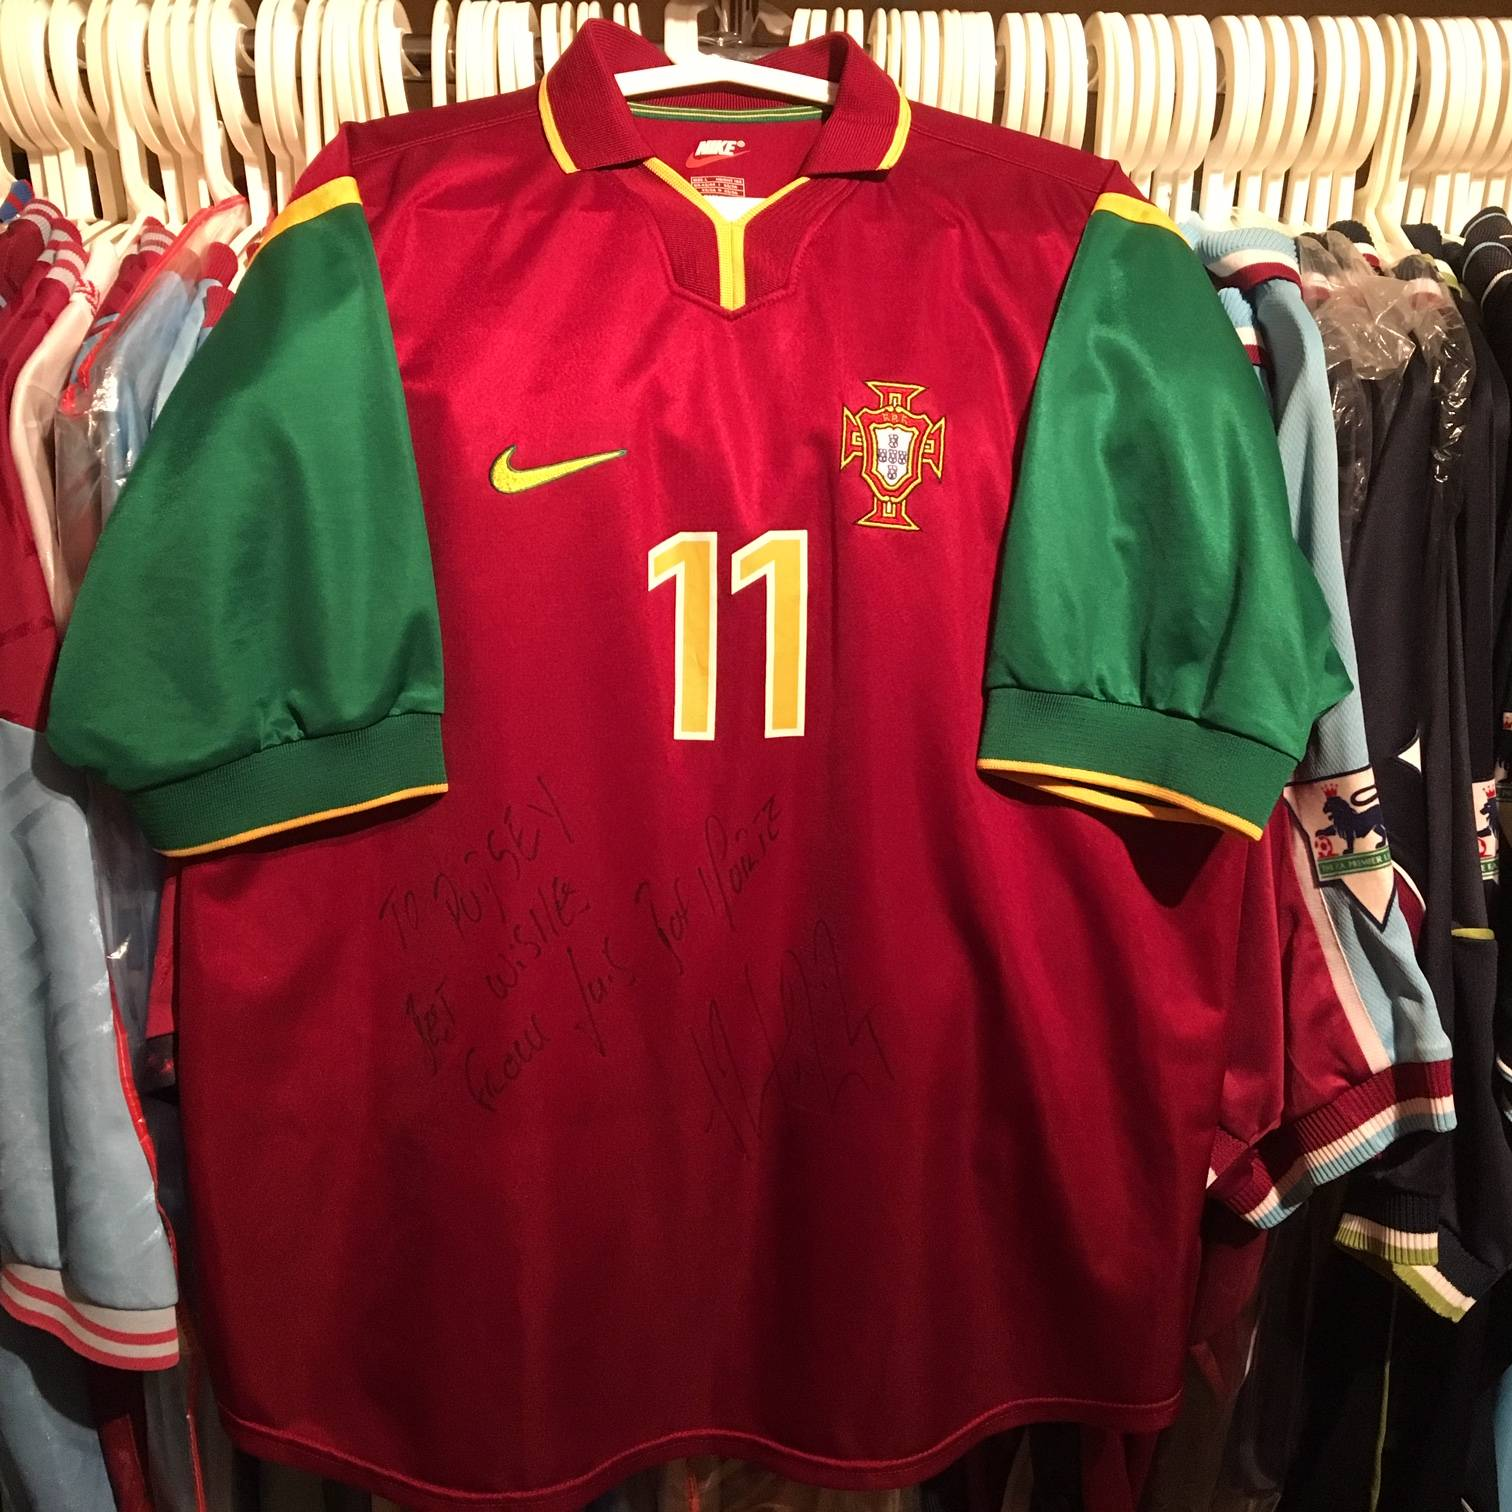 Luis Boa Morte match worn, and personally signed Portugal shirt.